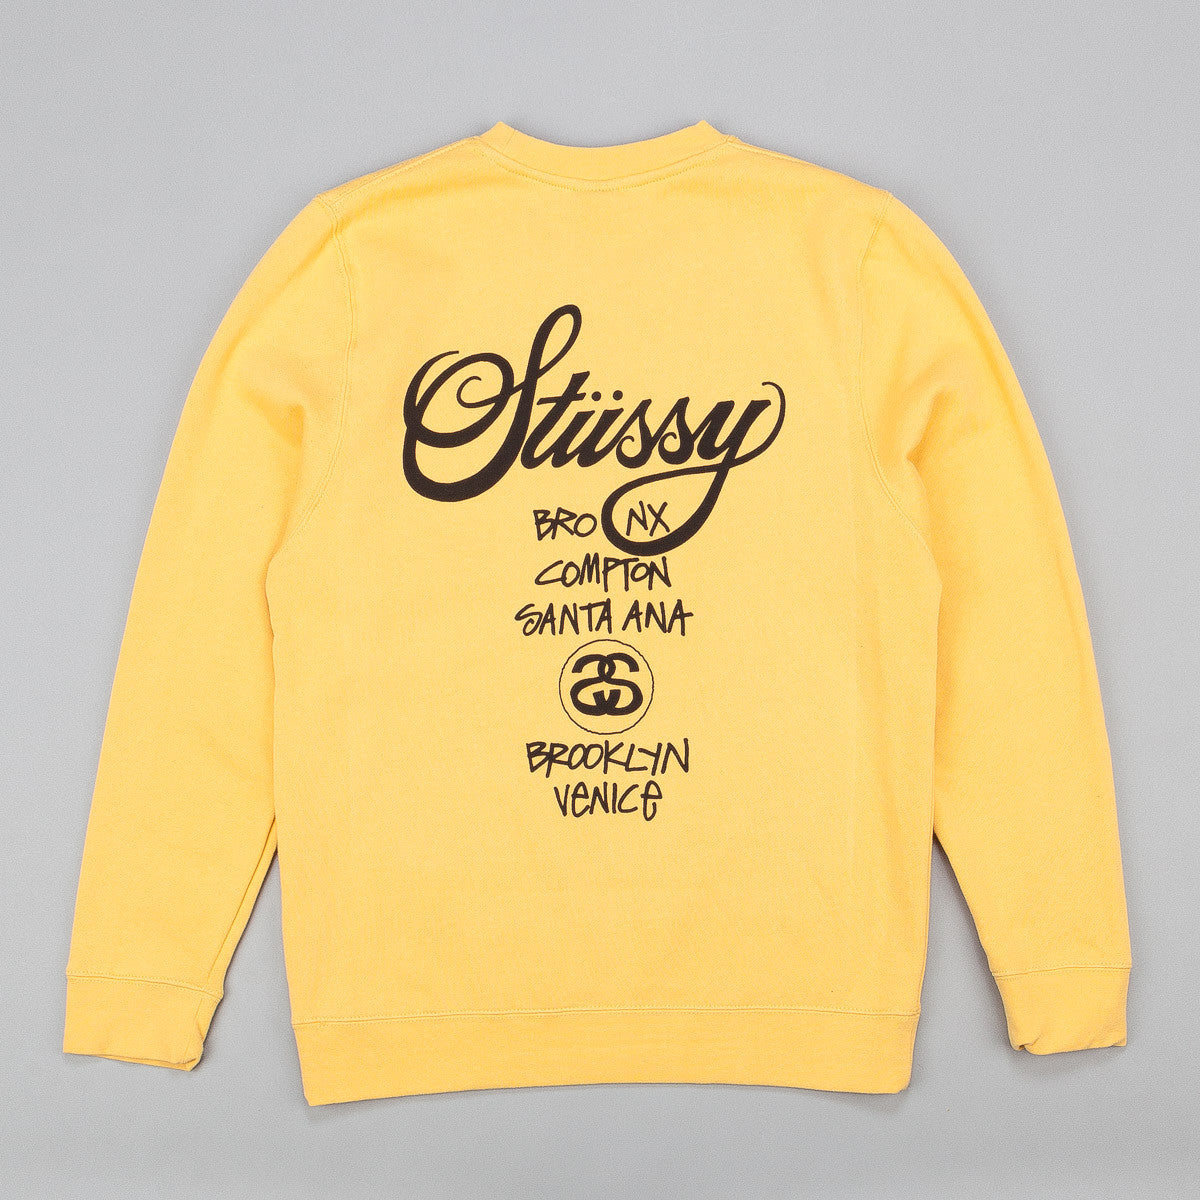 Stussy World Tour Crew Neck Sweatshirt - Faded Yellow